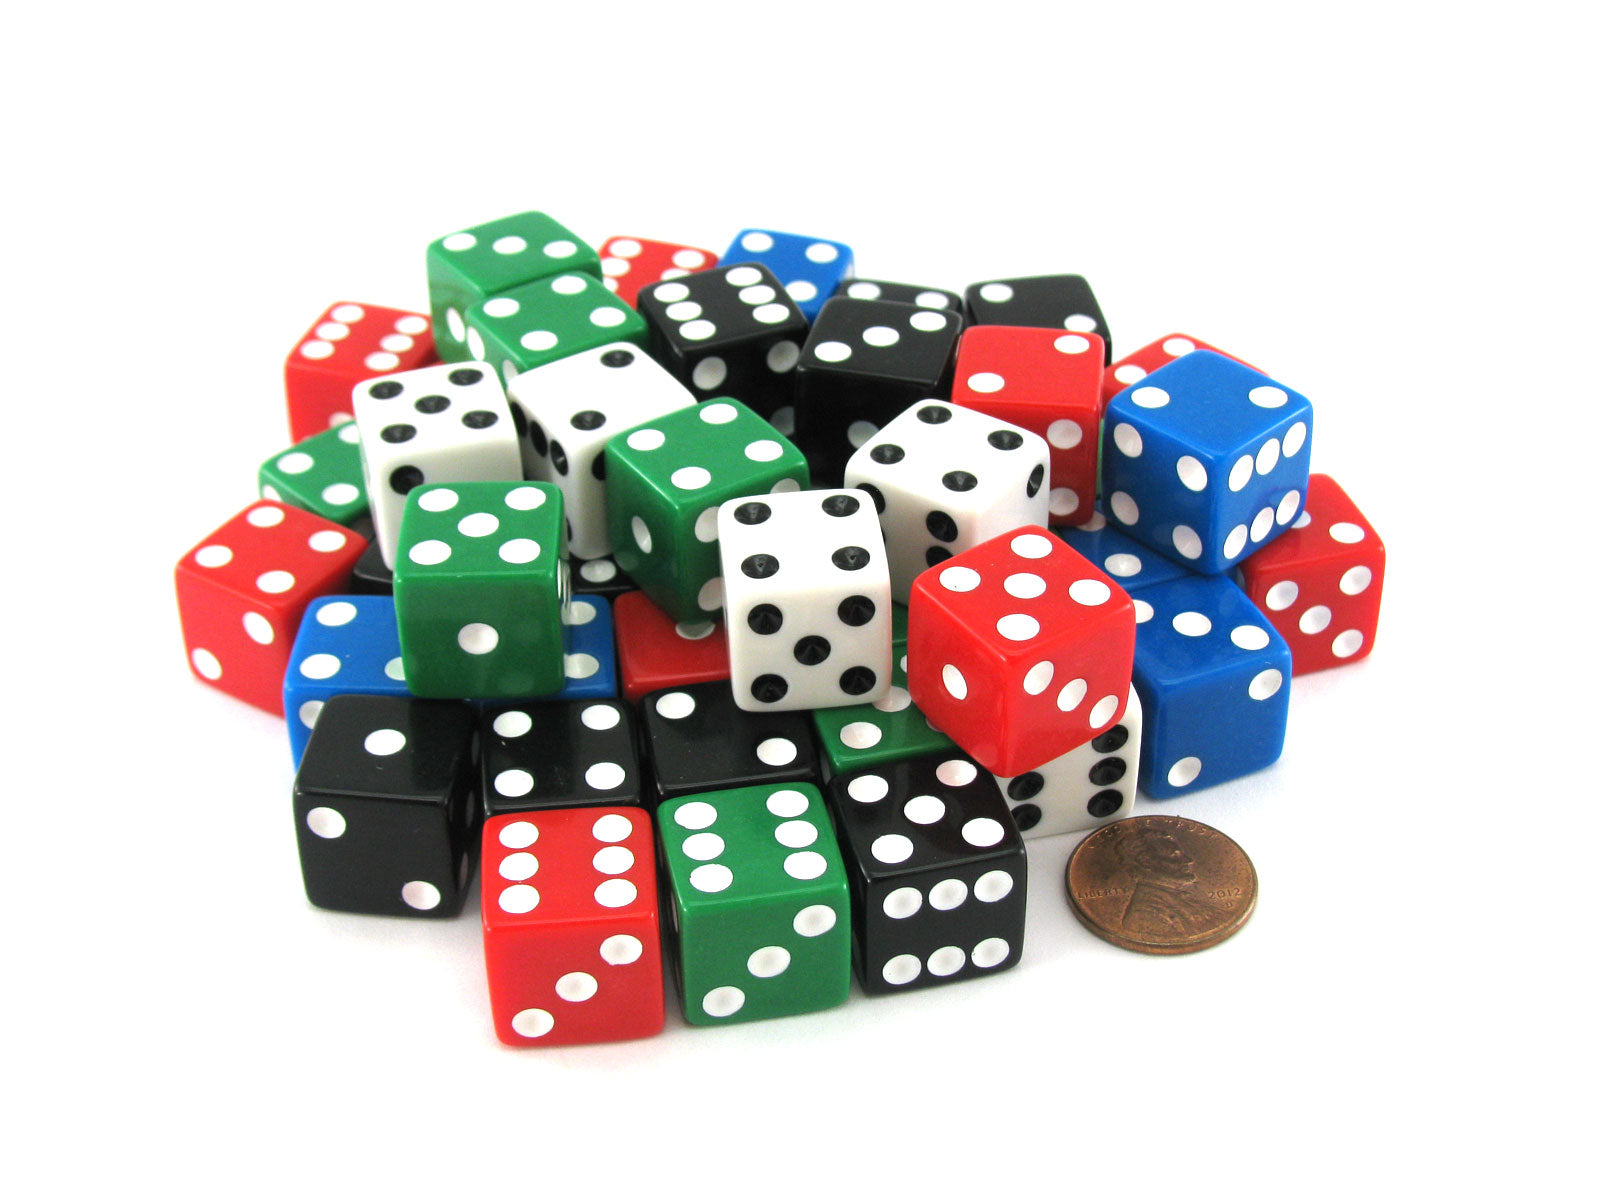 Set of 50 Six Sided Square Opaque 16mm D6 Dice - Red White Blue Green Black